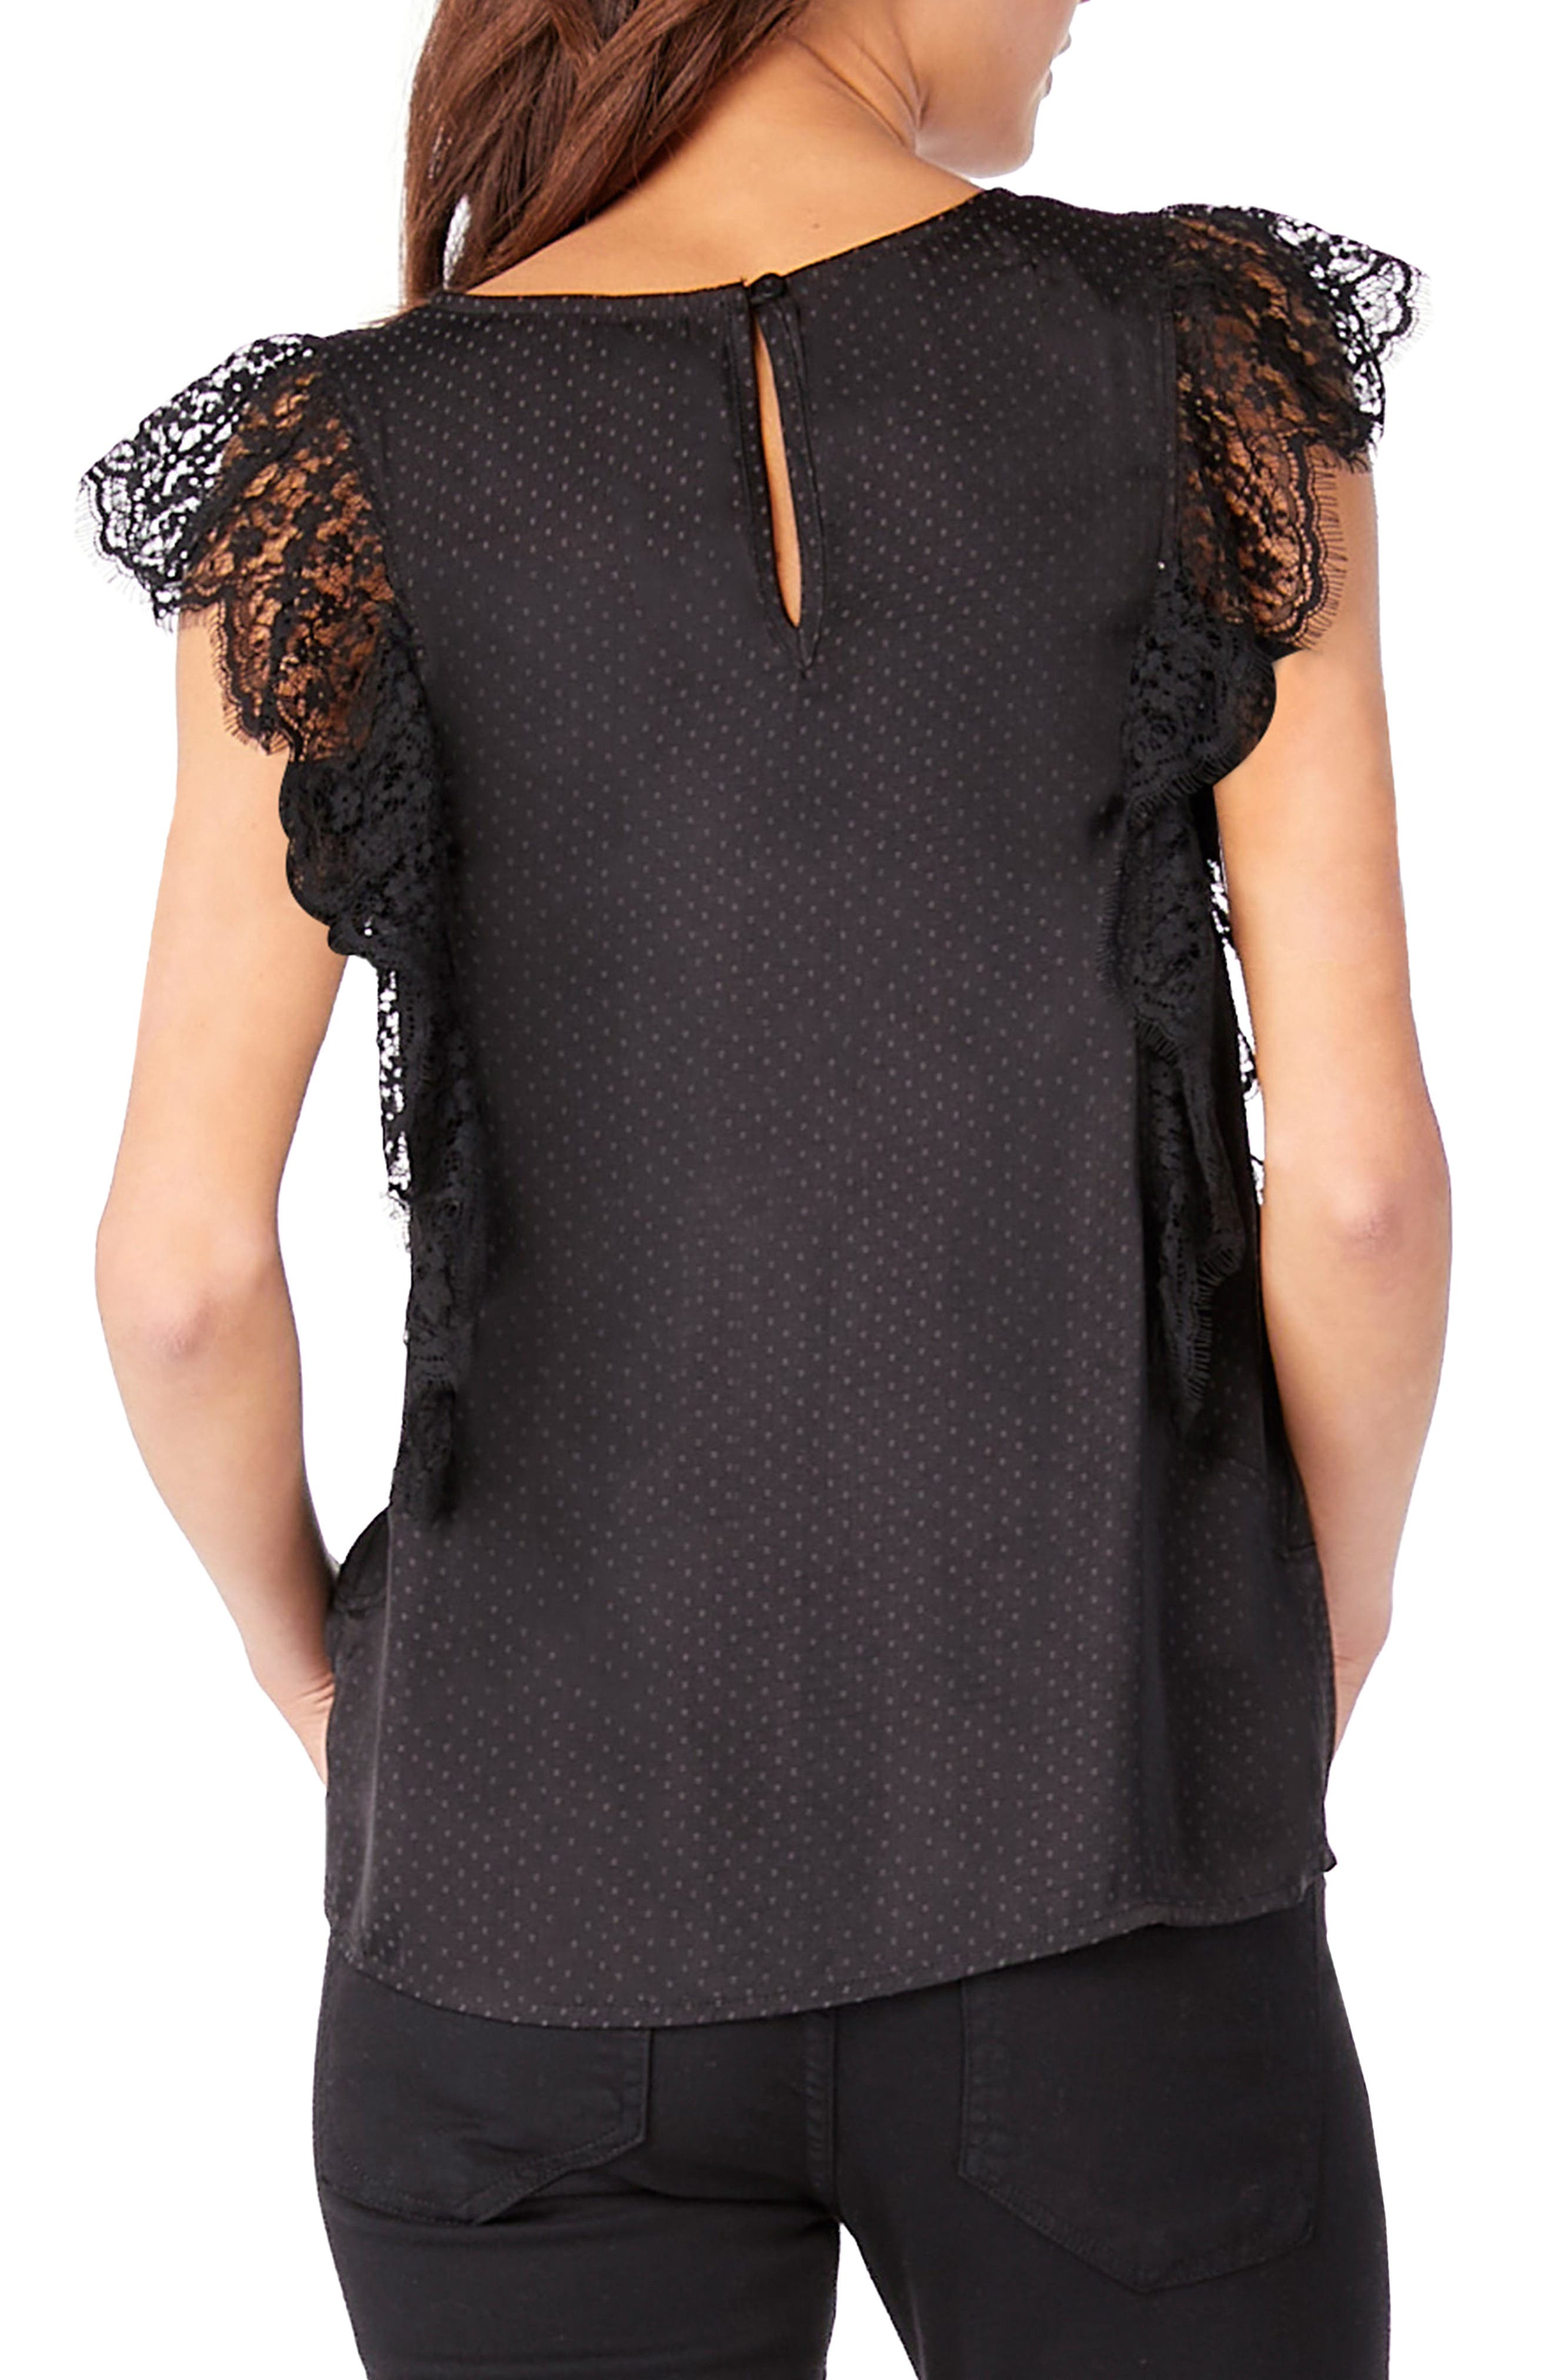 Lace Ruffle Top,                             Alternate thumbnail 2, color,                             Black